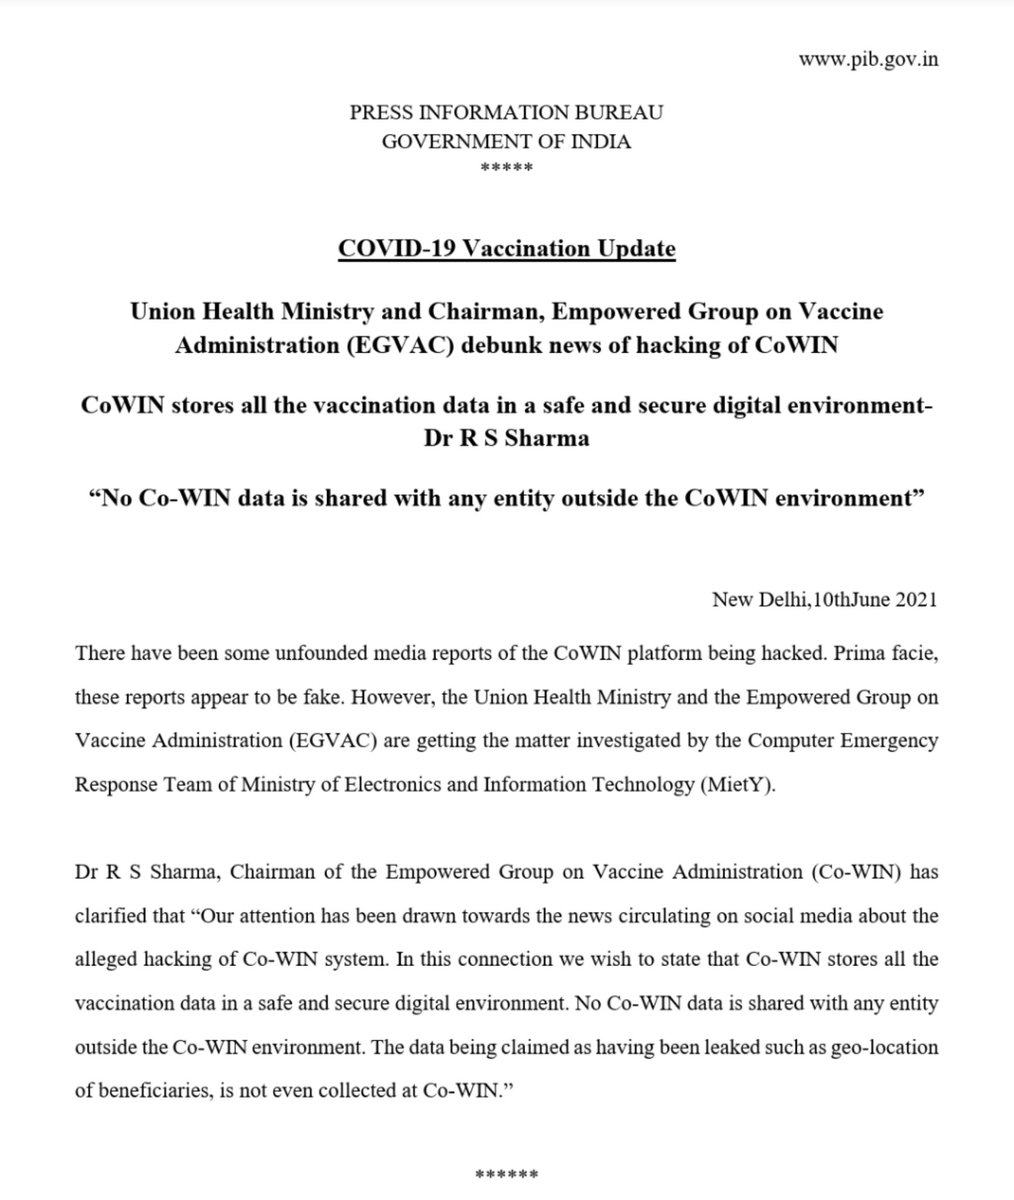 #LargestVaccinationDrive   Union Health Ministry & Chairman, Empowered Group on Vaccine Administration debunk news of hacking of #CoWIN.  CoWIN stores all vaccination data in a safe & secure digital environment- Dr @rssharma3  @PMOIndia  @drharshvardhan @AshwiniKChoubey https://t.co/5yeREnM3HO